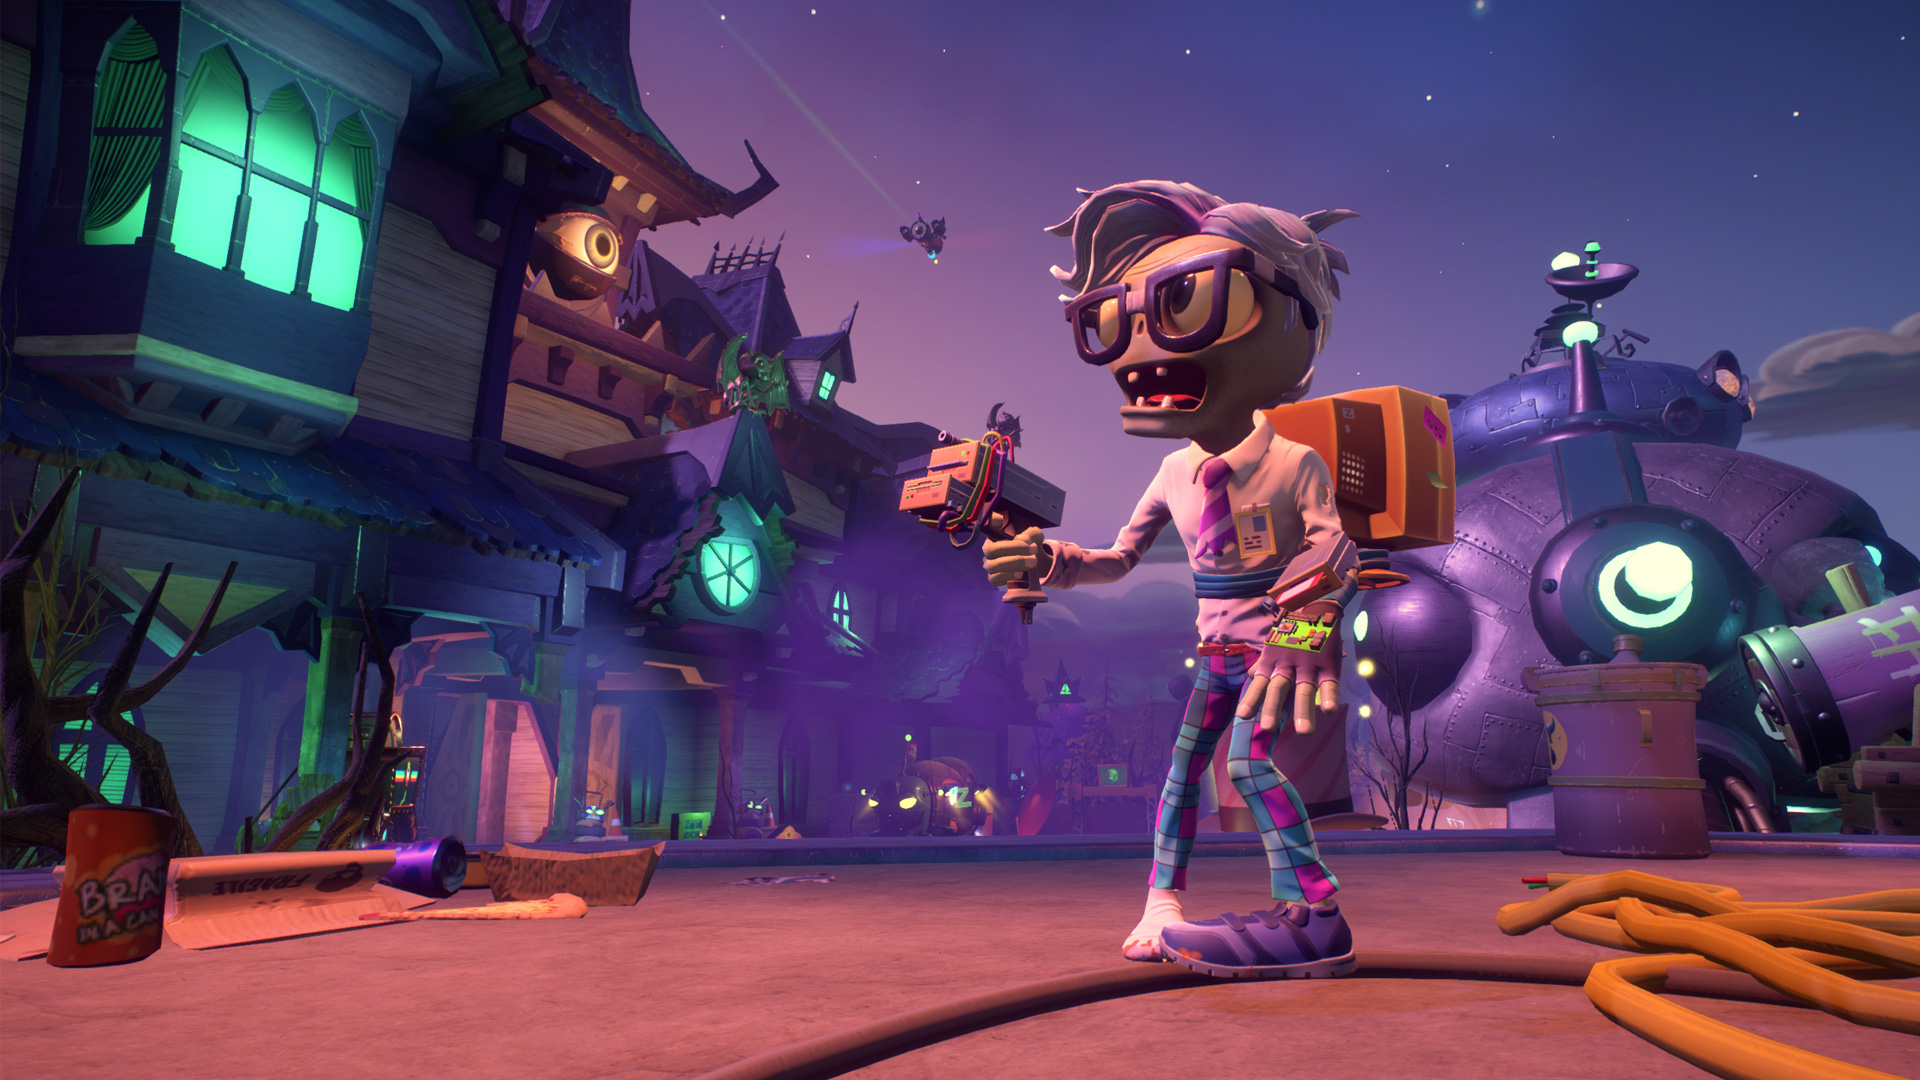 along with the xbox one and playstation 4 versions of the game plants vs zombies garden warfare 2 will be coming to pc on february 25th in australia and - Plants Vs Zombies Garden Warfare 2 Pc